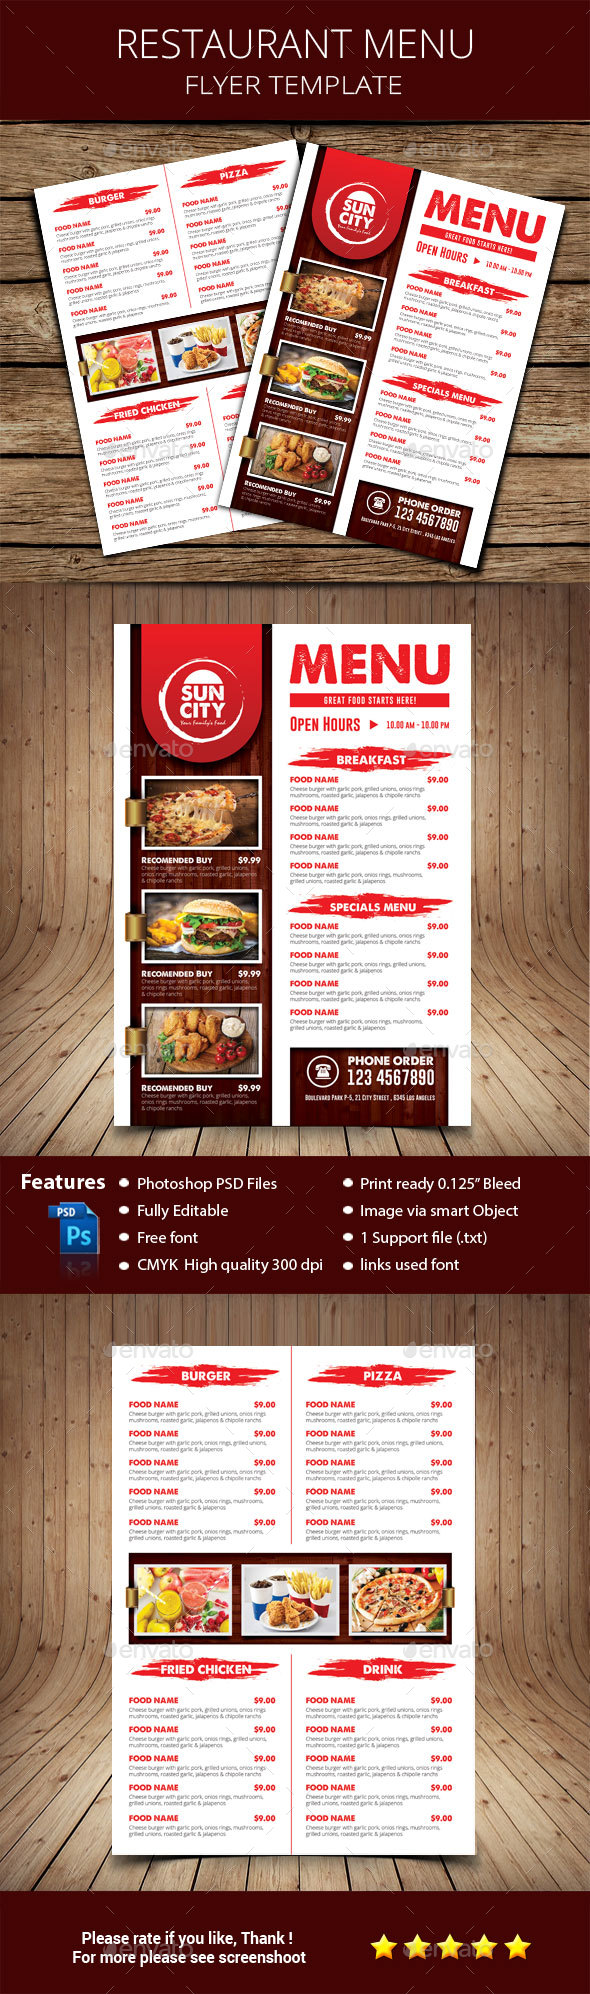 Rustic Restaurant Menu Flyer - Restaurant Flyers